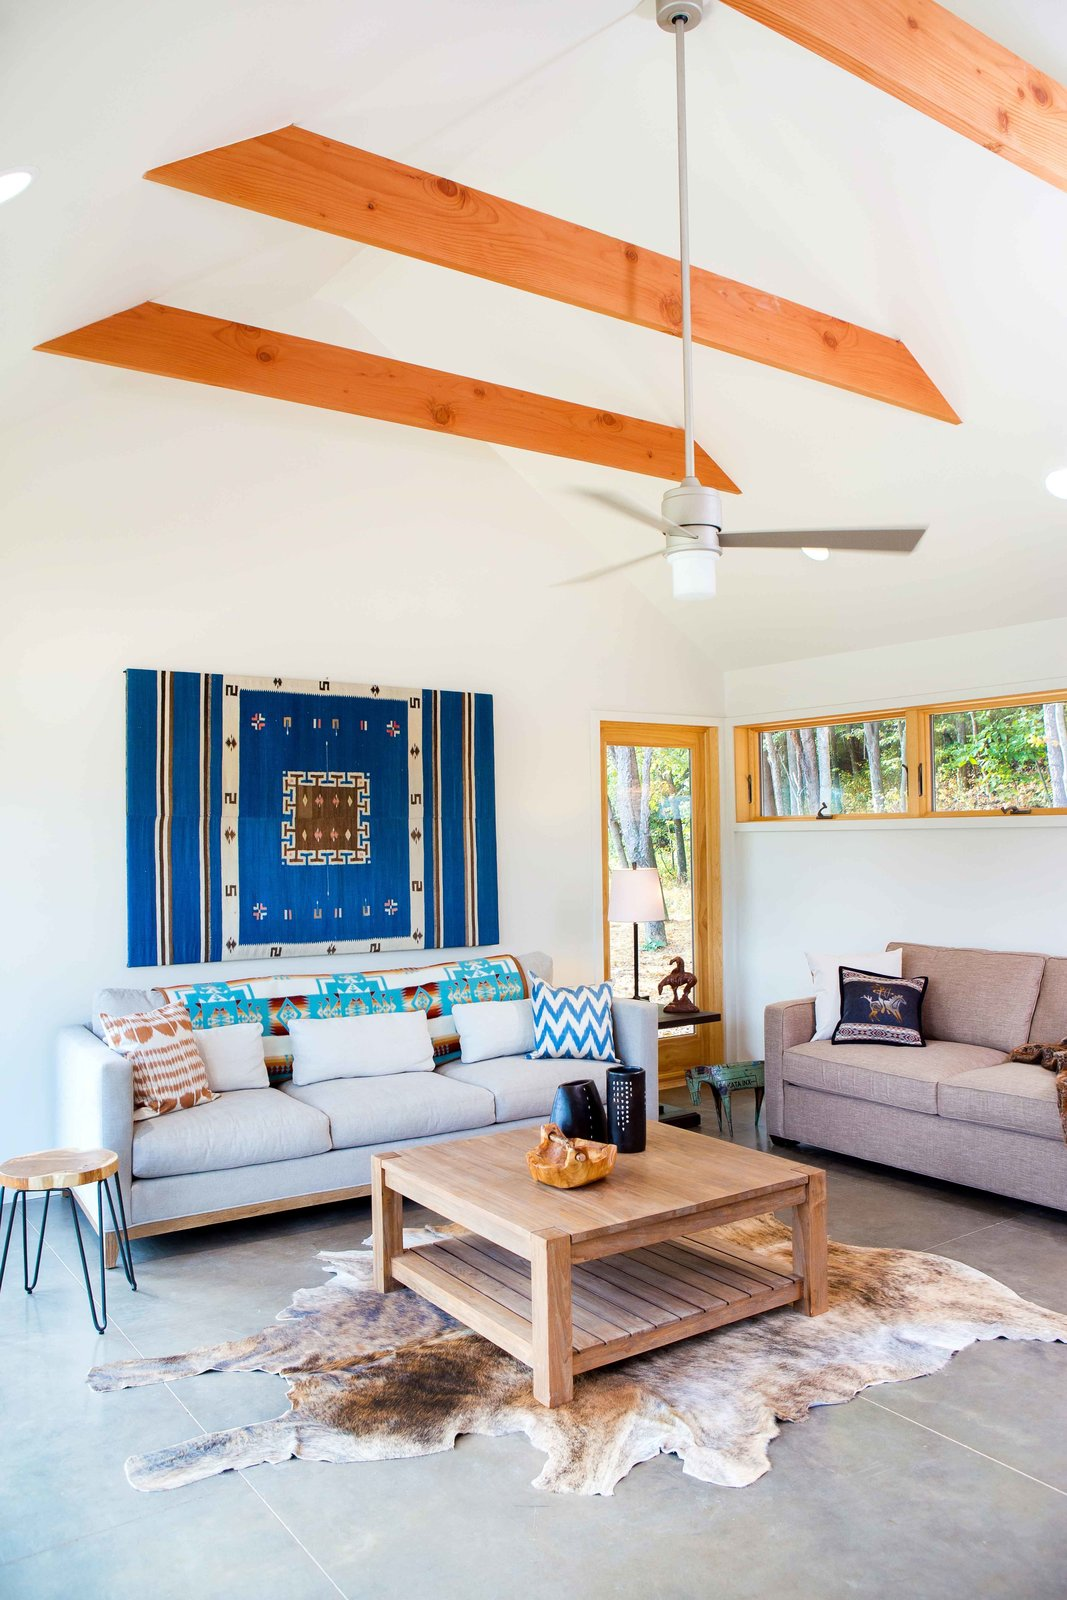 The bright ochres of the Douglas Fir beams and window framing accent the gray and white hues of the furniture, floors, and walls.  Off-Grid Retreat by Zachary Edelson